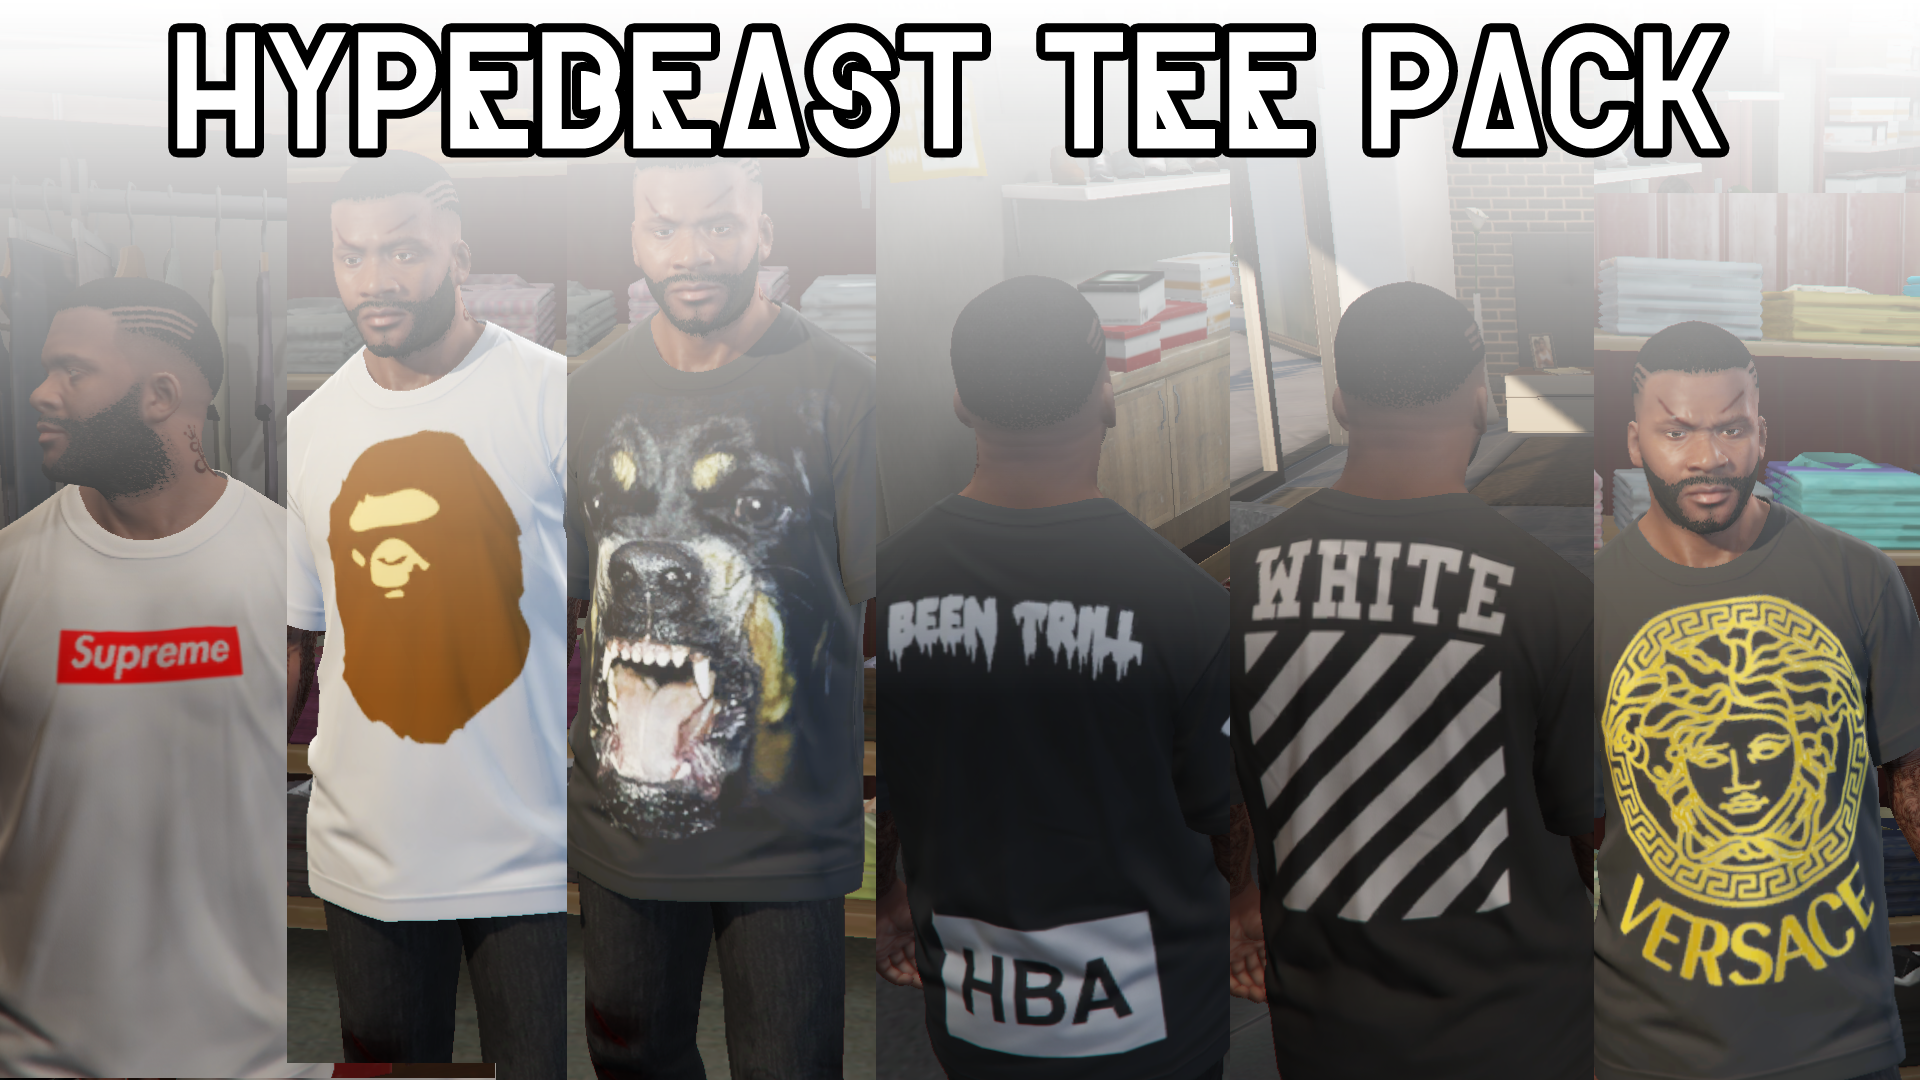 extraordinary gta hypebeast outfits online